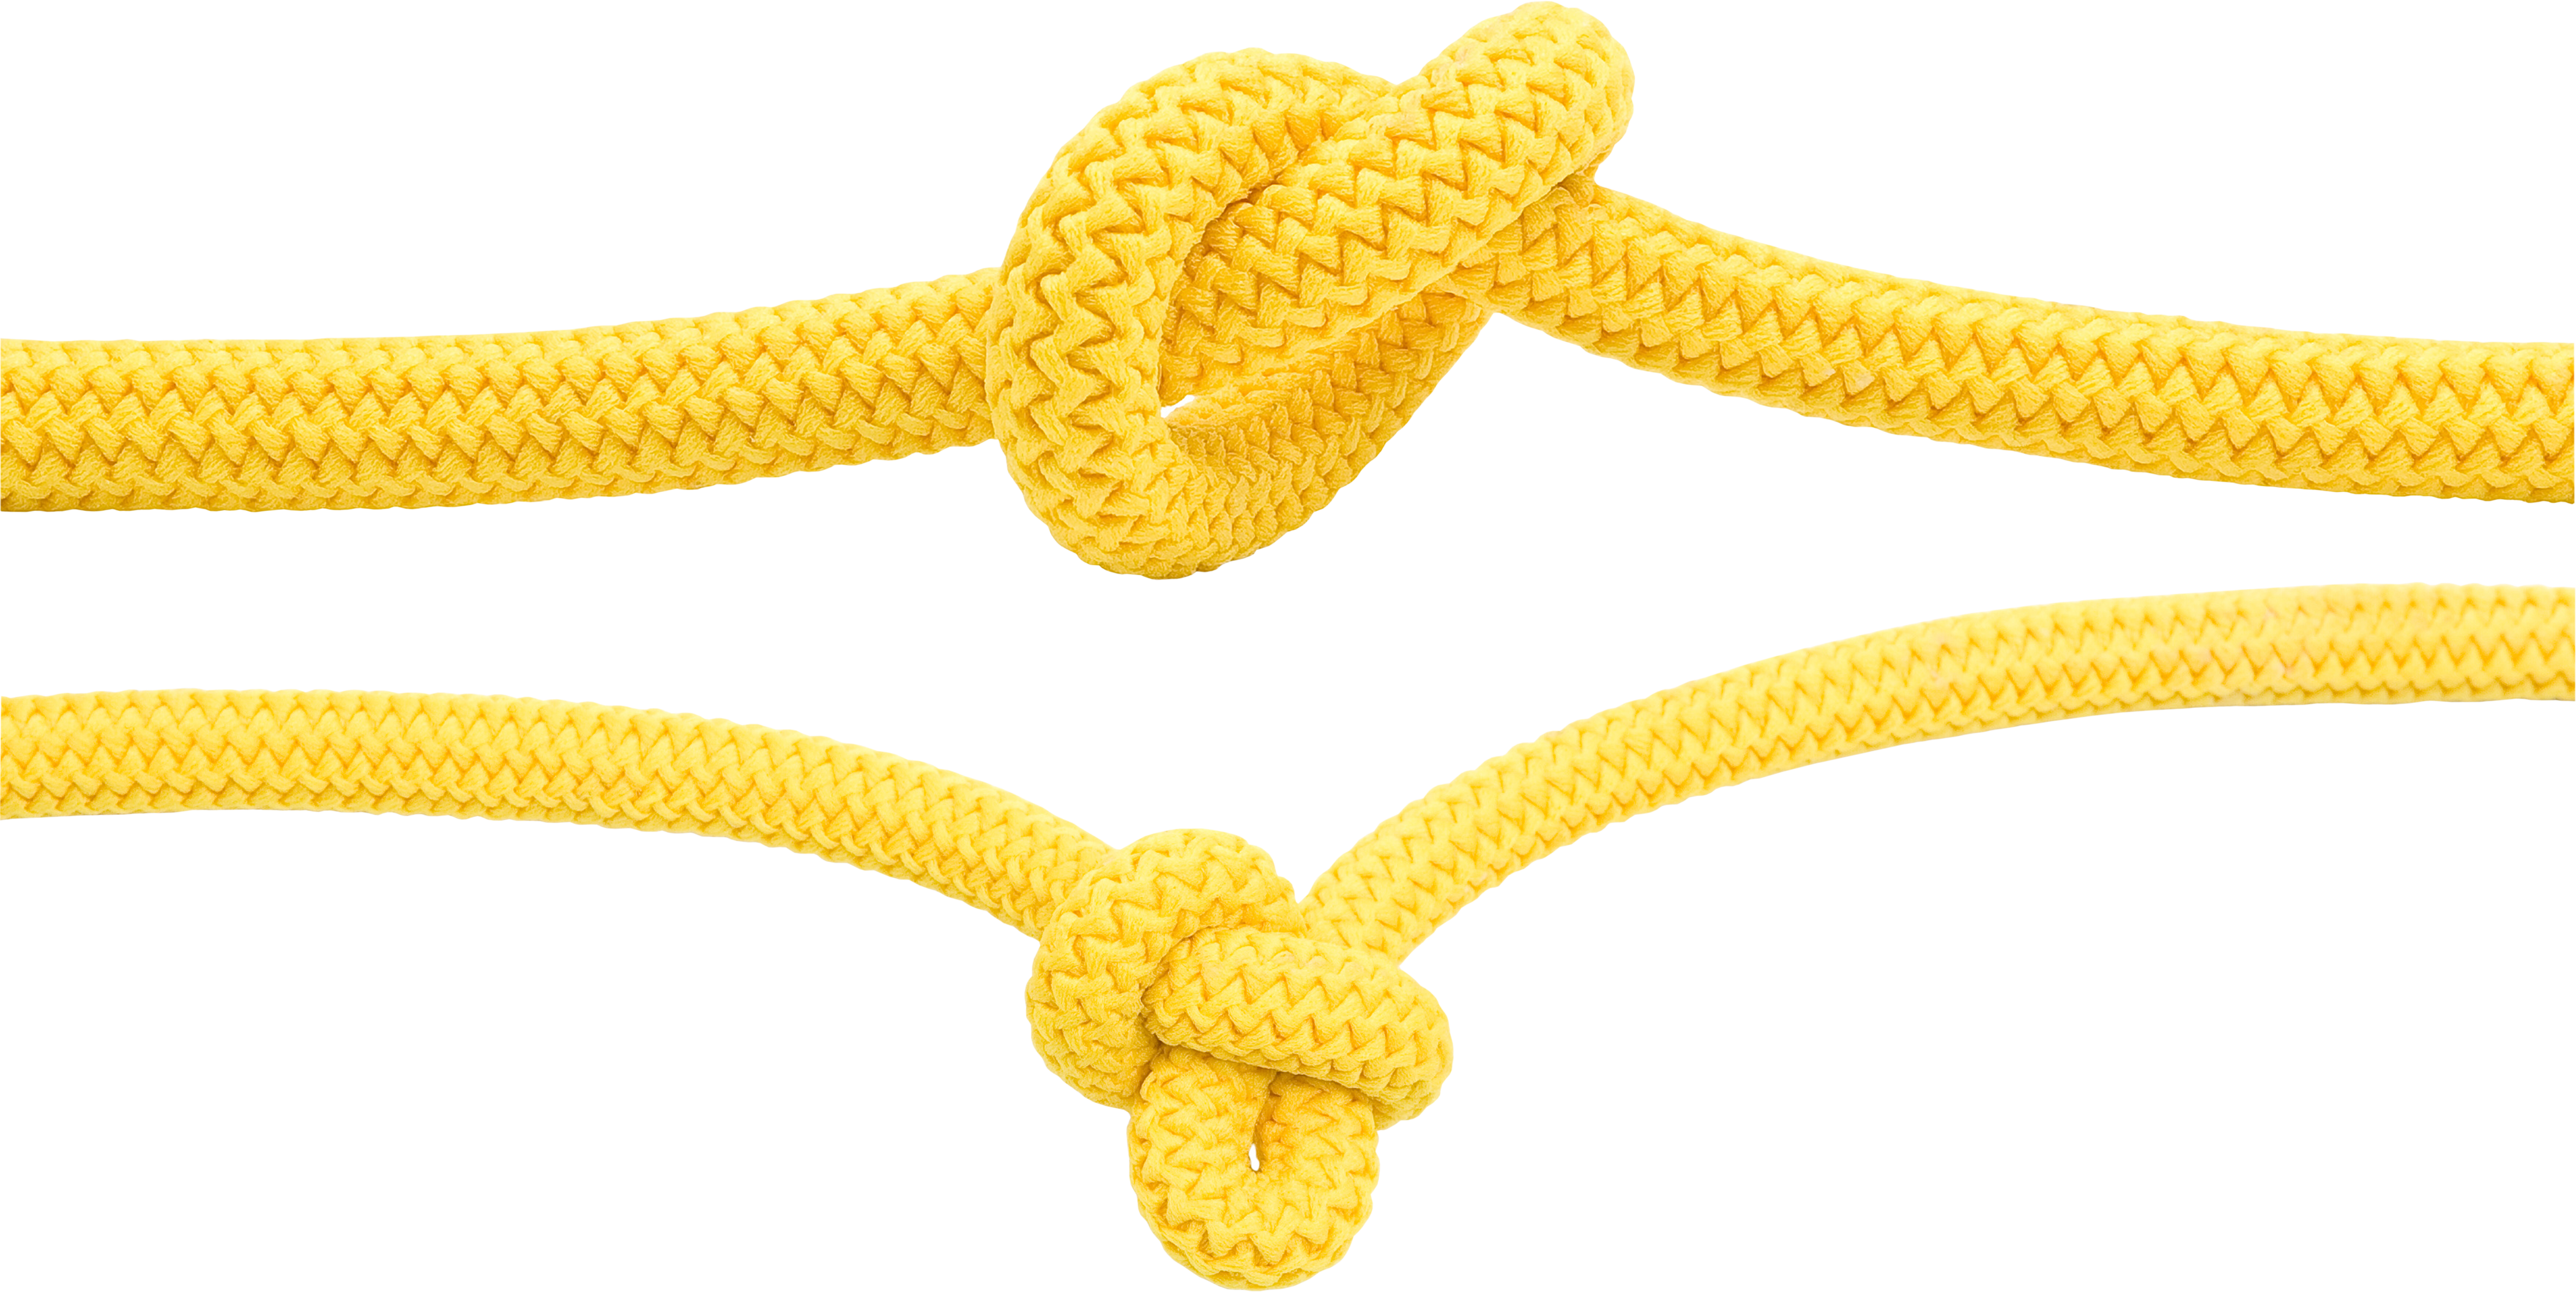 Rope Clipart image #45169